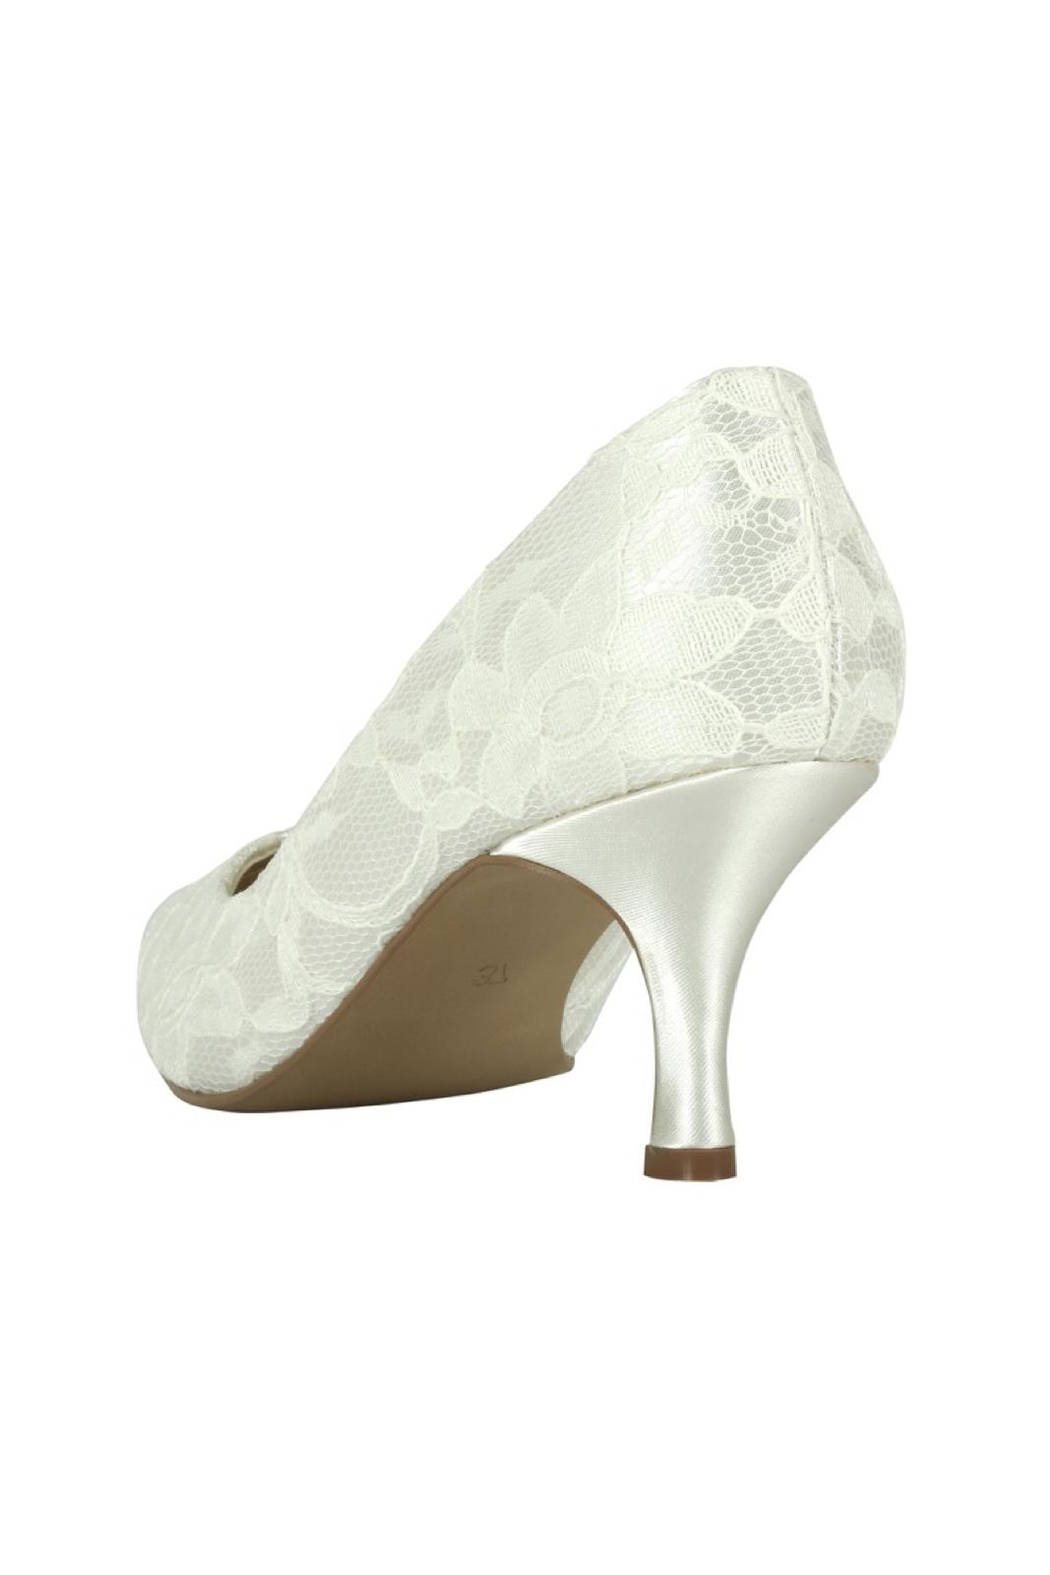 pink paradox London Cameo Ivory Lace Shoes - Side Cropped Image